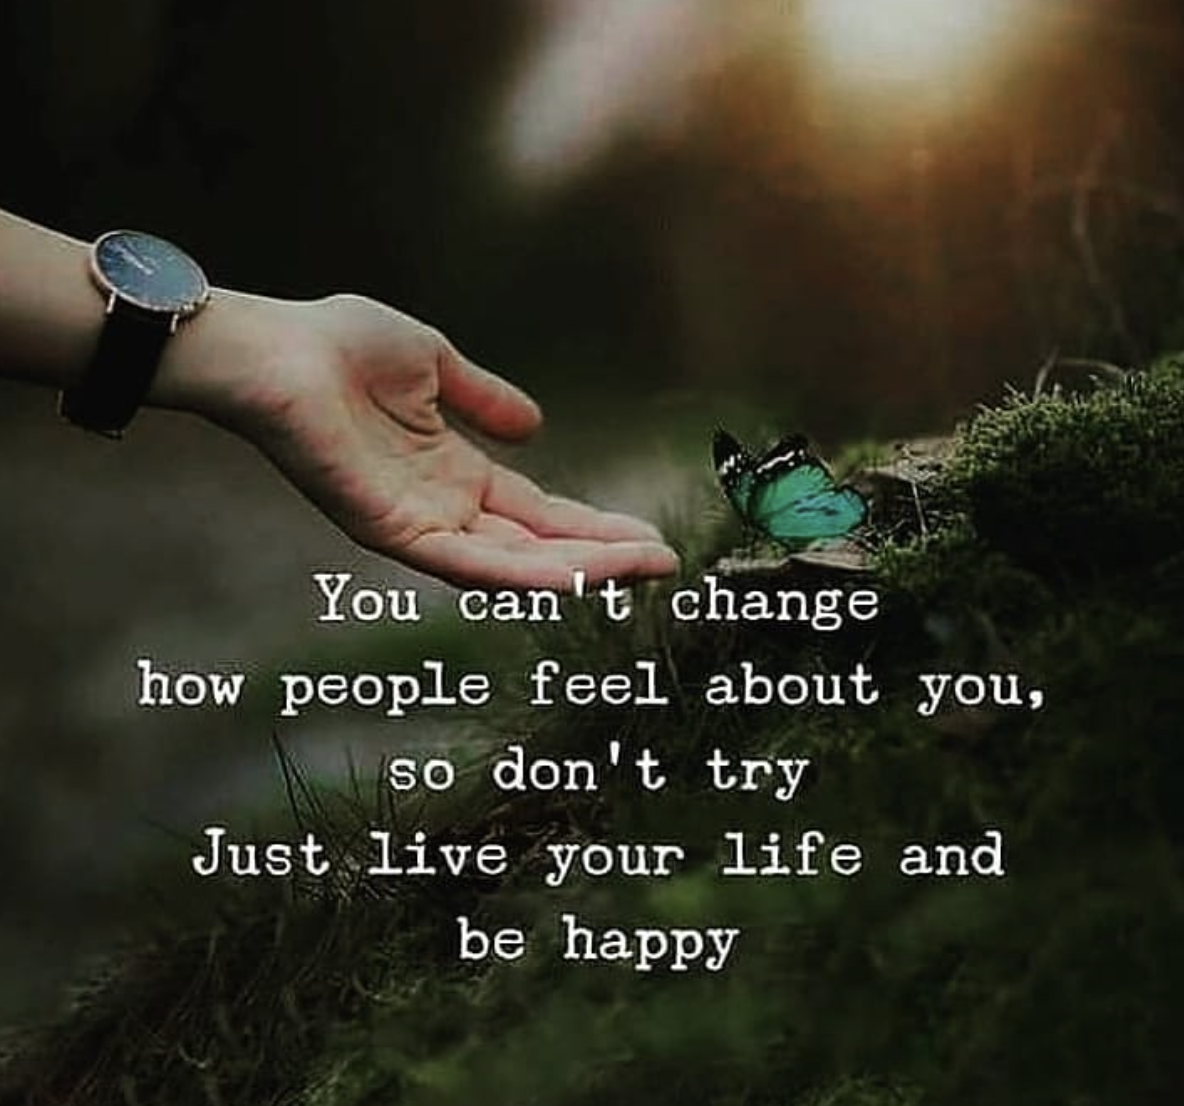 [Image] You can't change how people feel about you, so don't try. Just live your life and be happy.